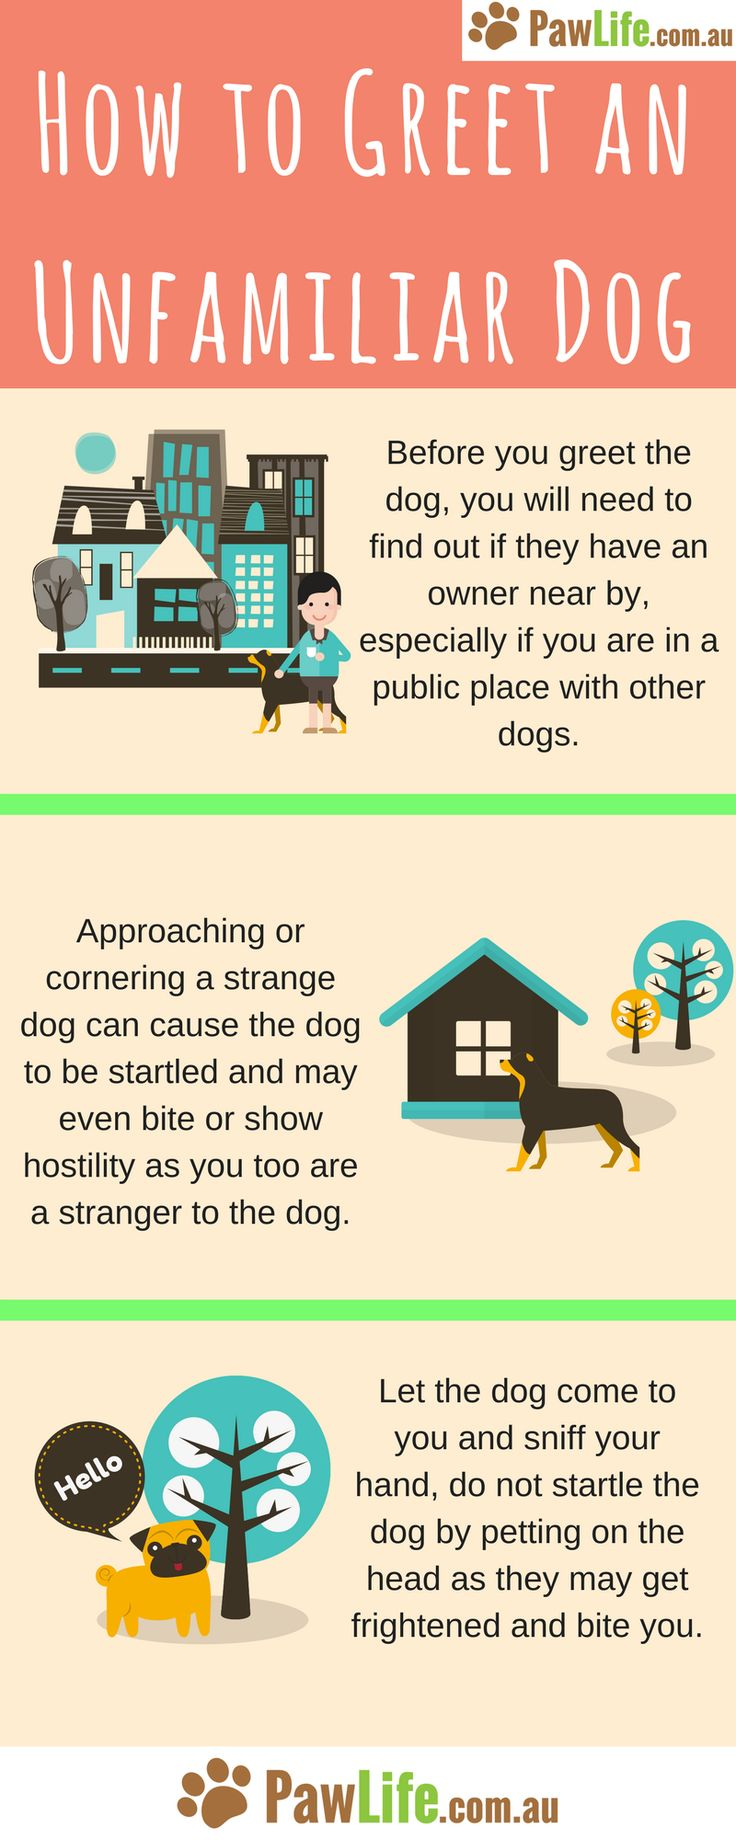 There is a safe way to do so without causing a tense situation and to reduce the risk of the unfamiliar dog lashing out.